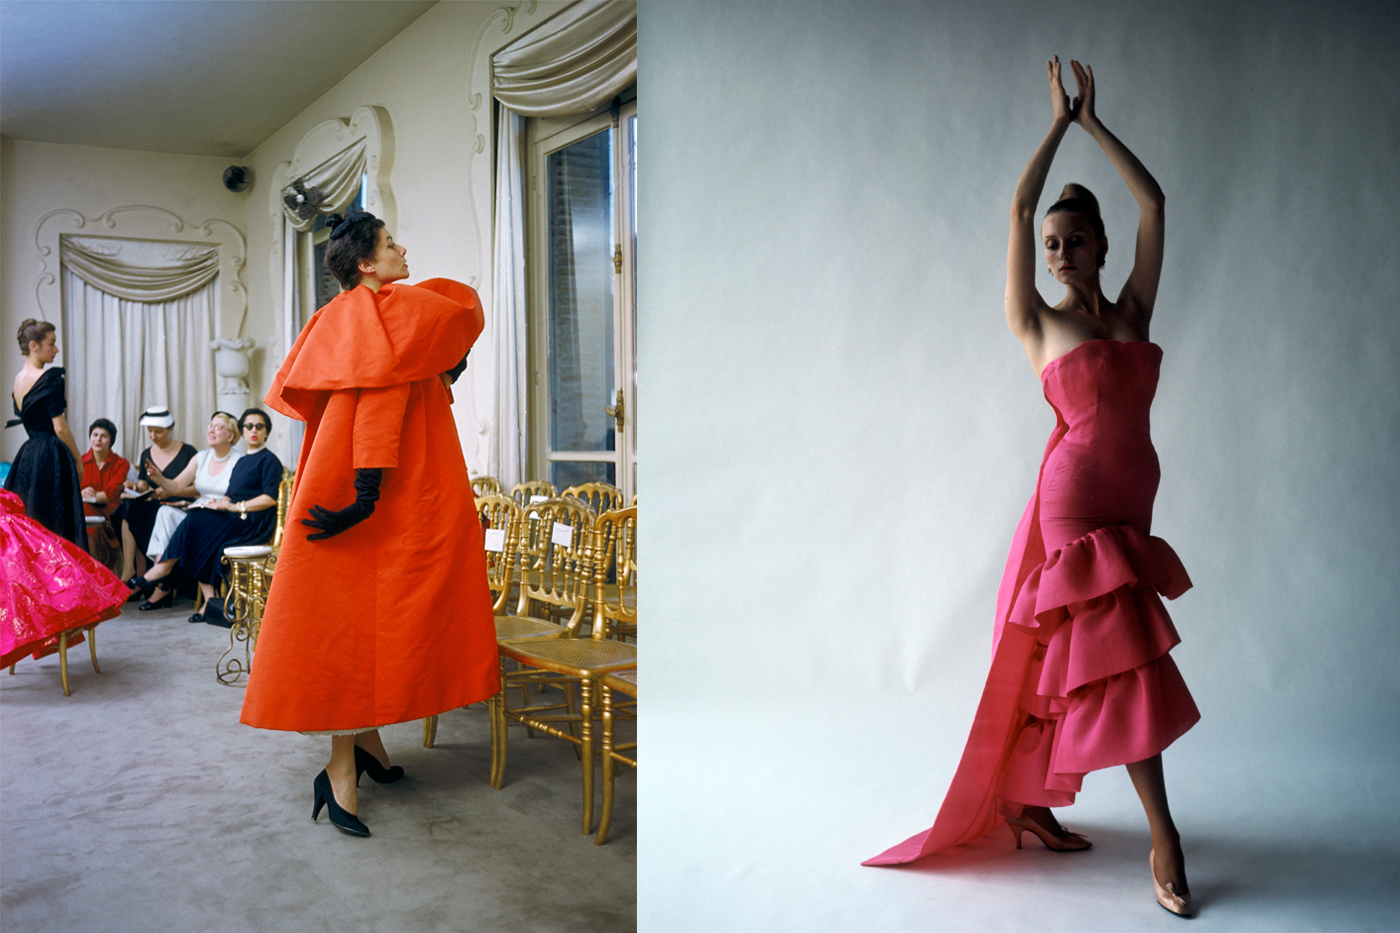 Model wearing Balenciaga orange coat, Paris, 1954 © Mark Shaw / Flamenco-style evening dress, Cristóbal Balenciaga, Paris, 1961 © Cecil Beaton